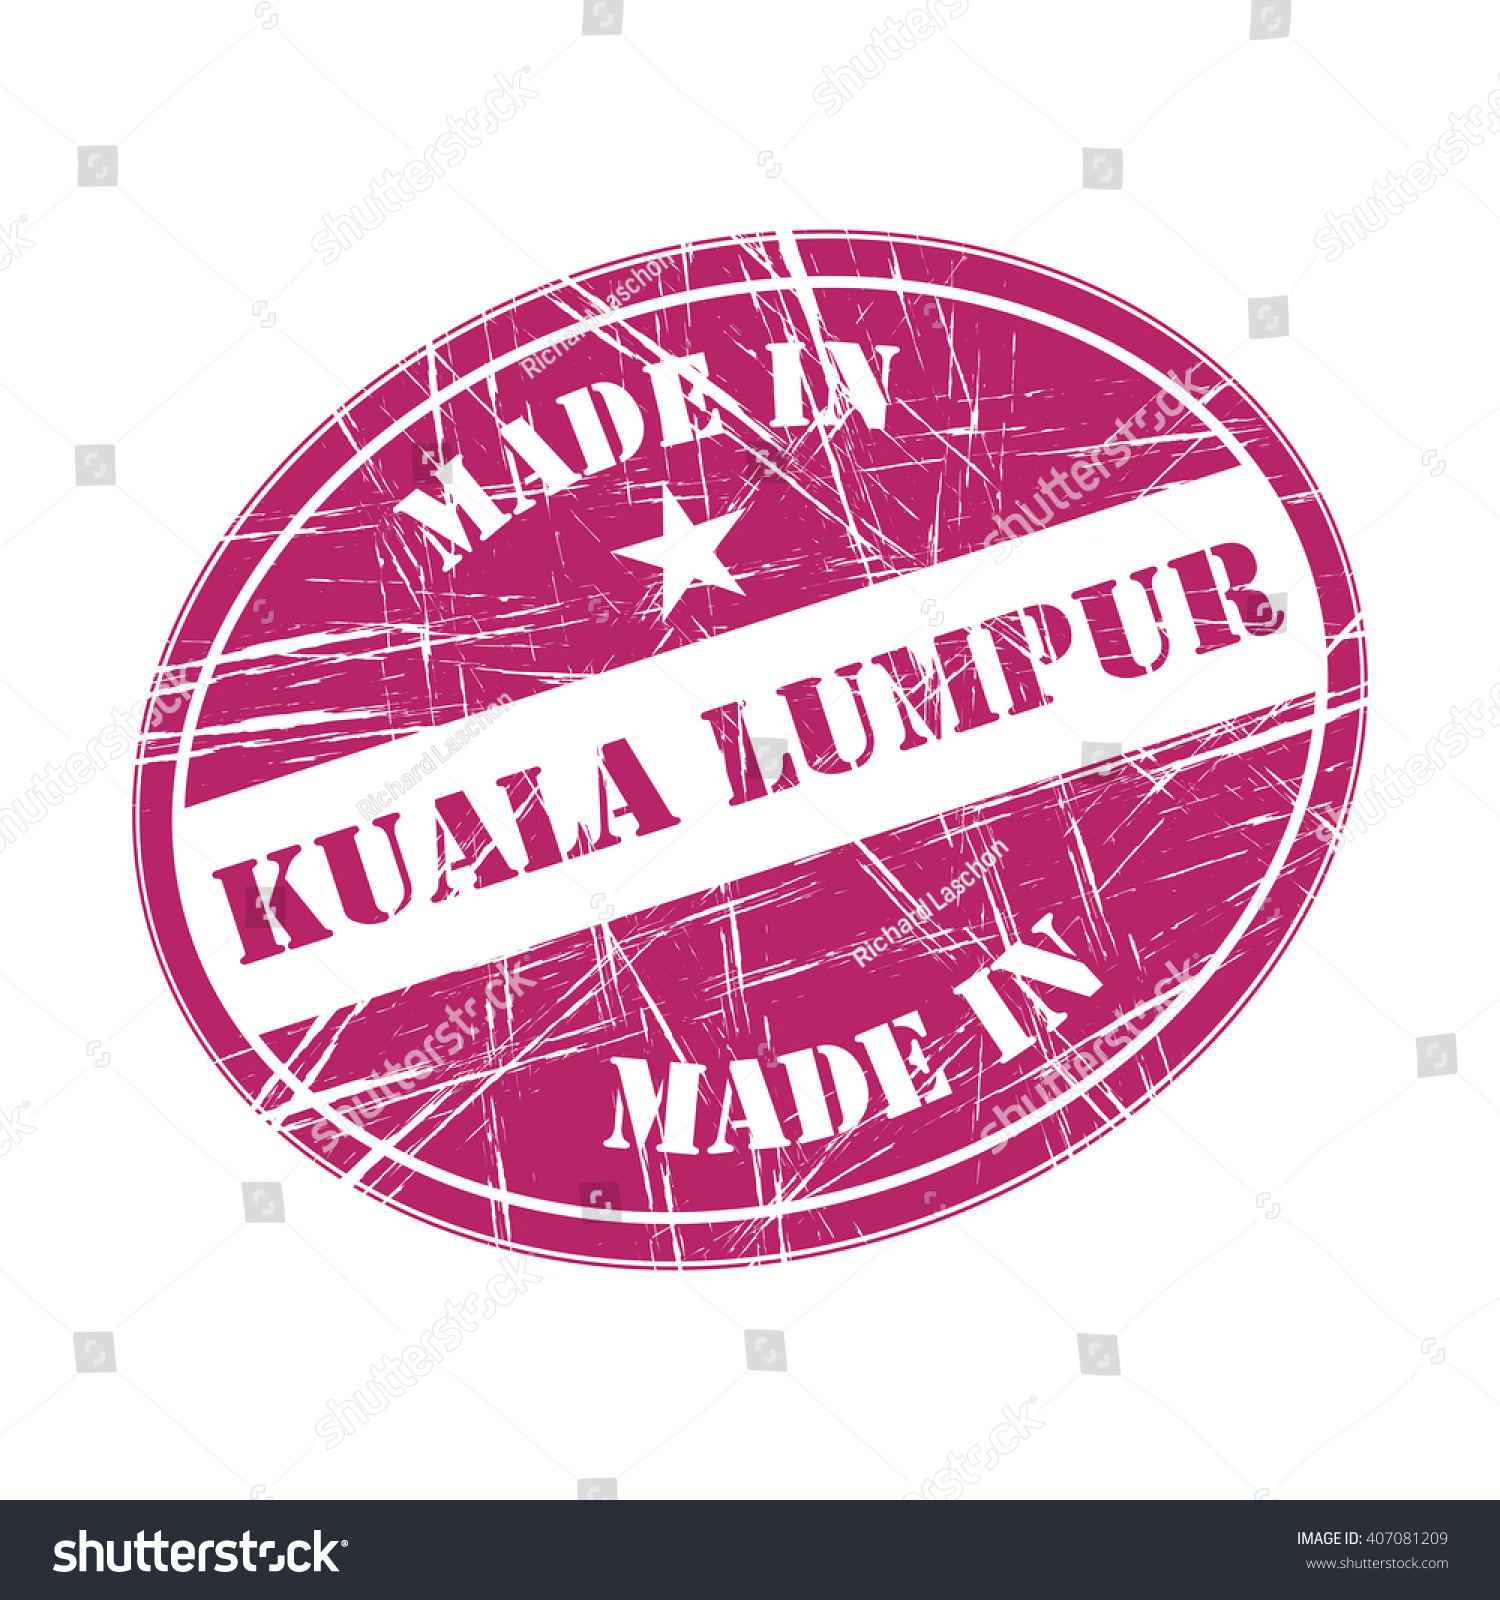 Made In Kuala Lumpur Rubber Stamp